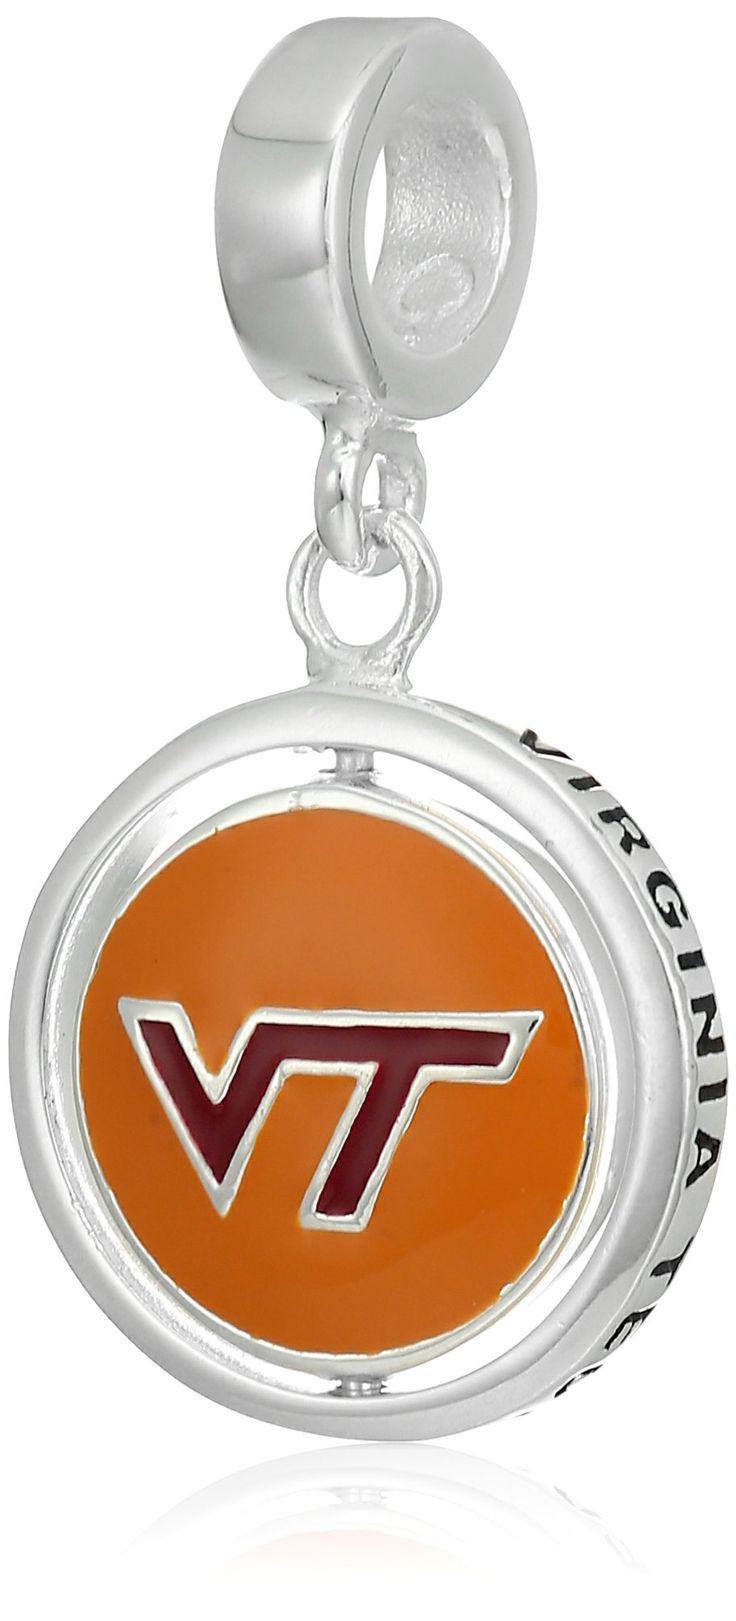 Persona Sterling Silver Virginia Tech Beads and Charms. Virginia Tech charm from the Campus Life collection. 925 sterling silver rotating charm, hand-painted with enamel. Pair with more Virginia Tech charms and maroon & orange spacers. Meant to be worn on bracelets, necklaces, and earrings or as an addition to an existing charm bracelet; compatible with Pandora brand bracelets.